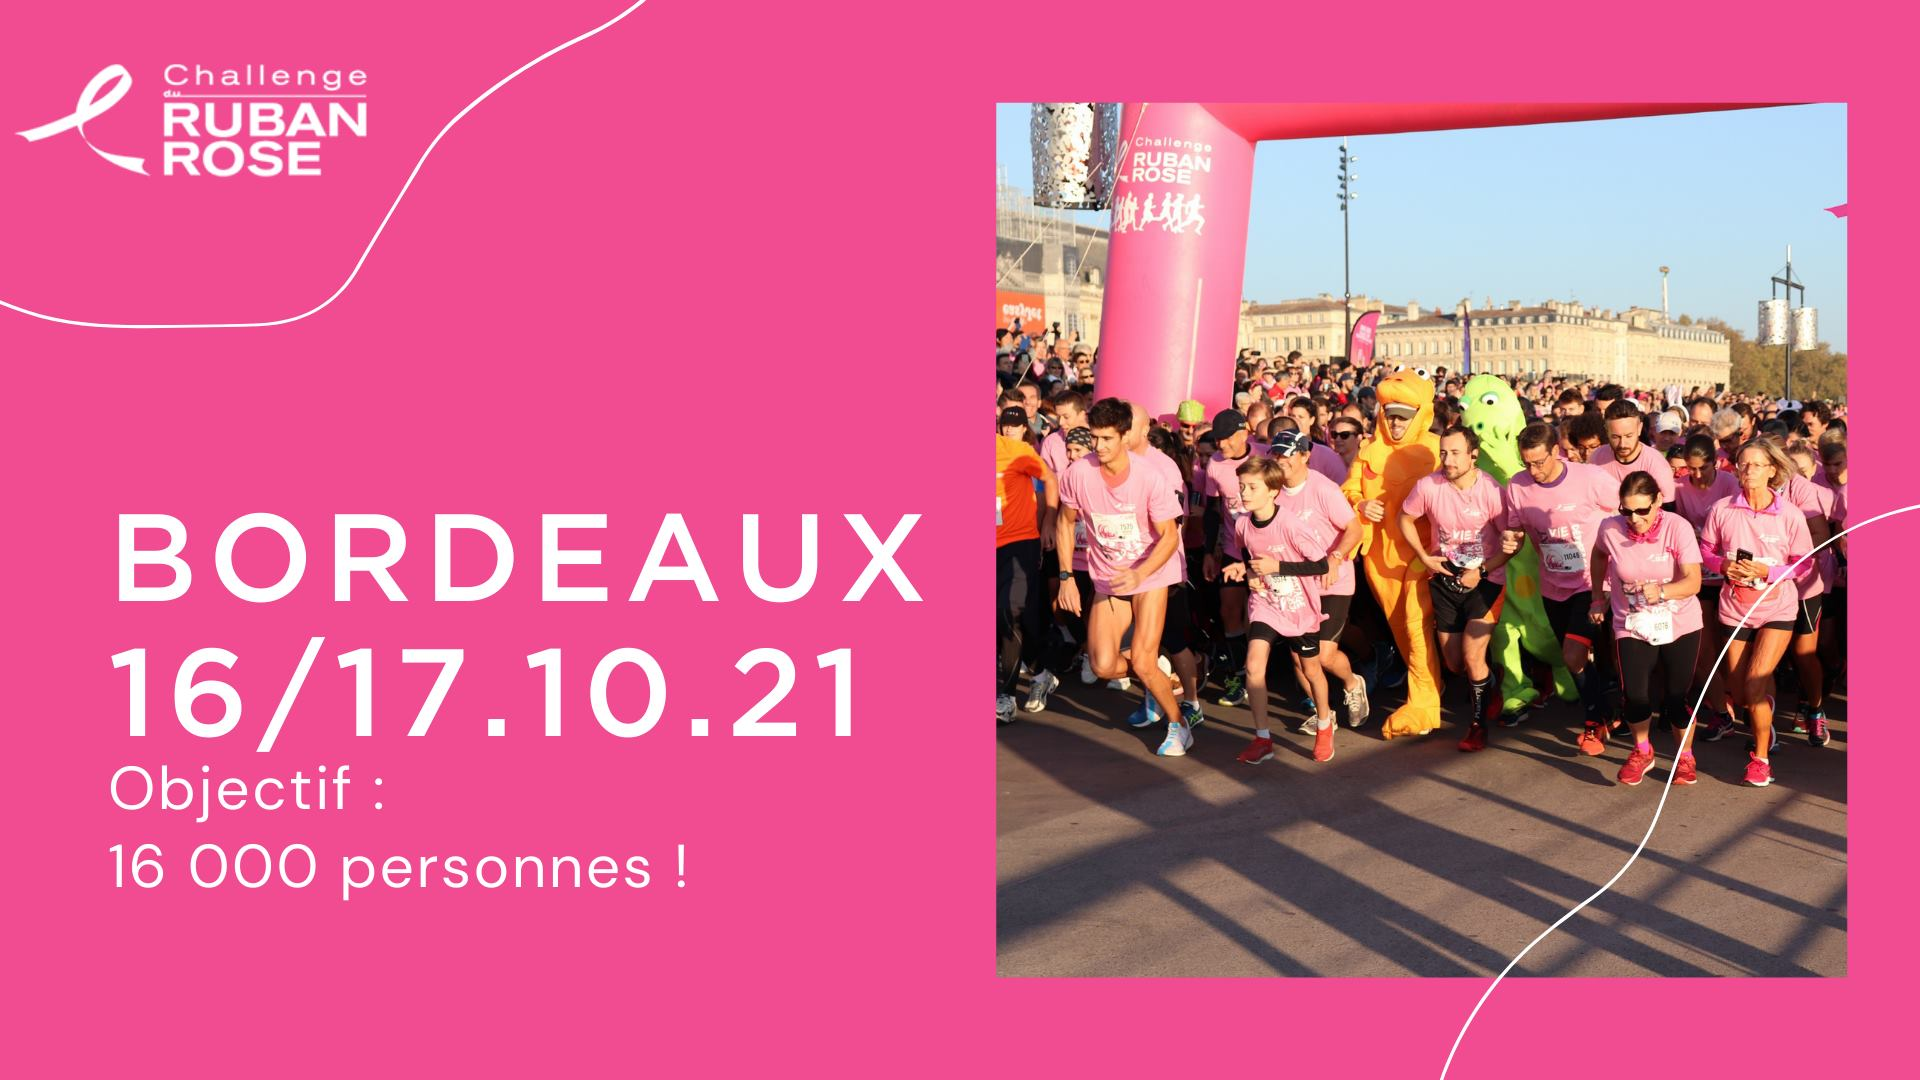 https://the-place-to-be.fr/wp-content/uploads/2021/07/Challenge-Ruban-Rose-BORDEAUX-2021-9f3e1468.jpg